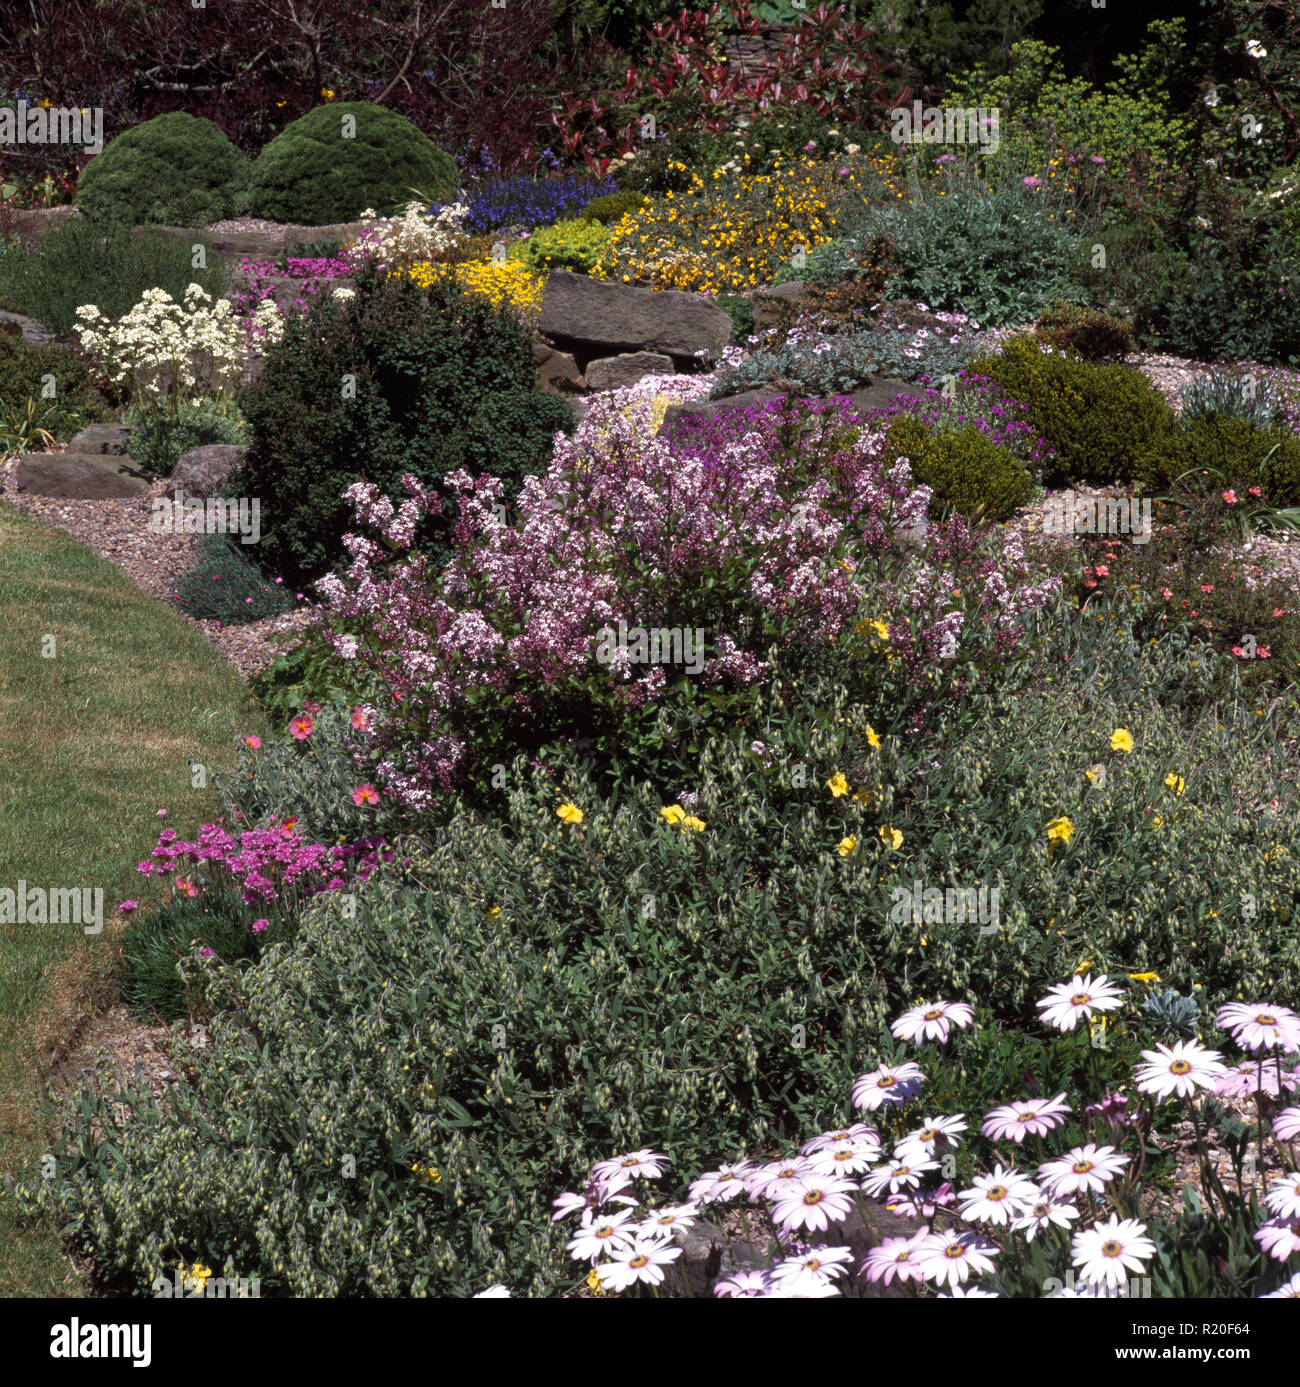 Perennials in large summer border - Stock Image